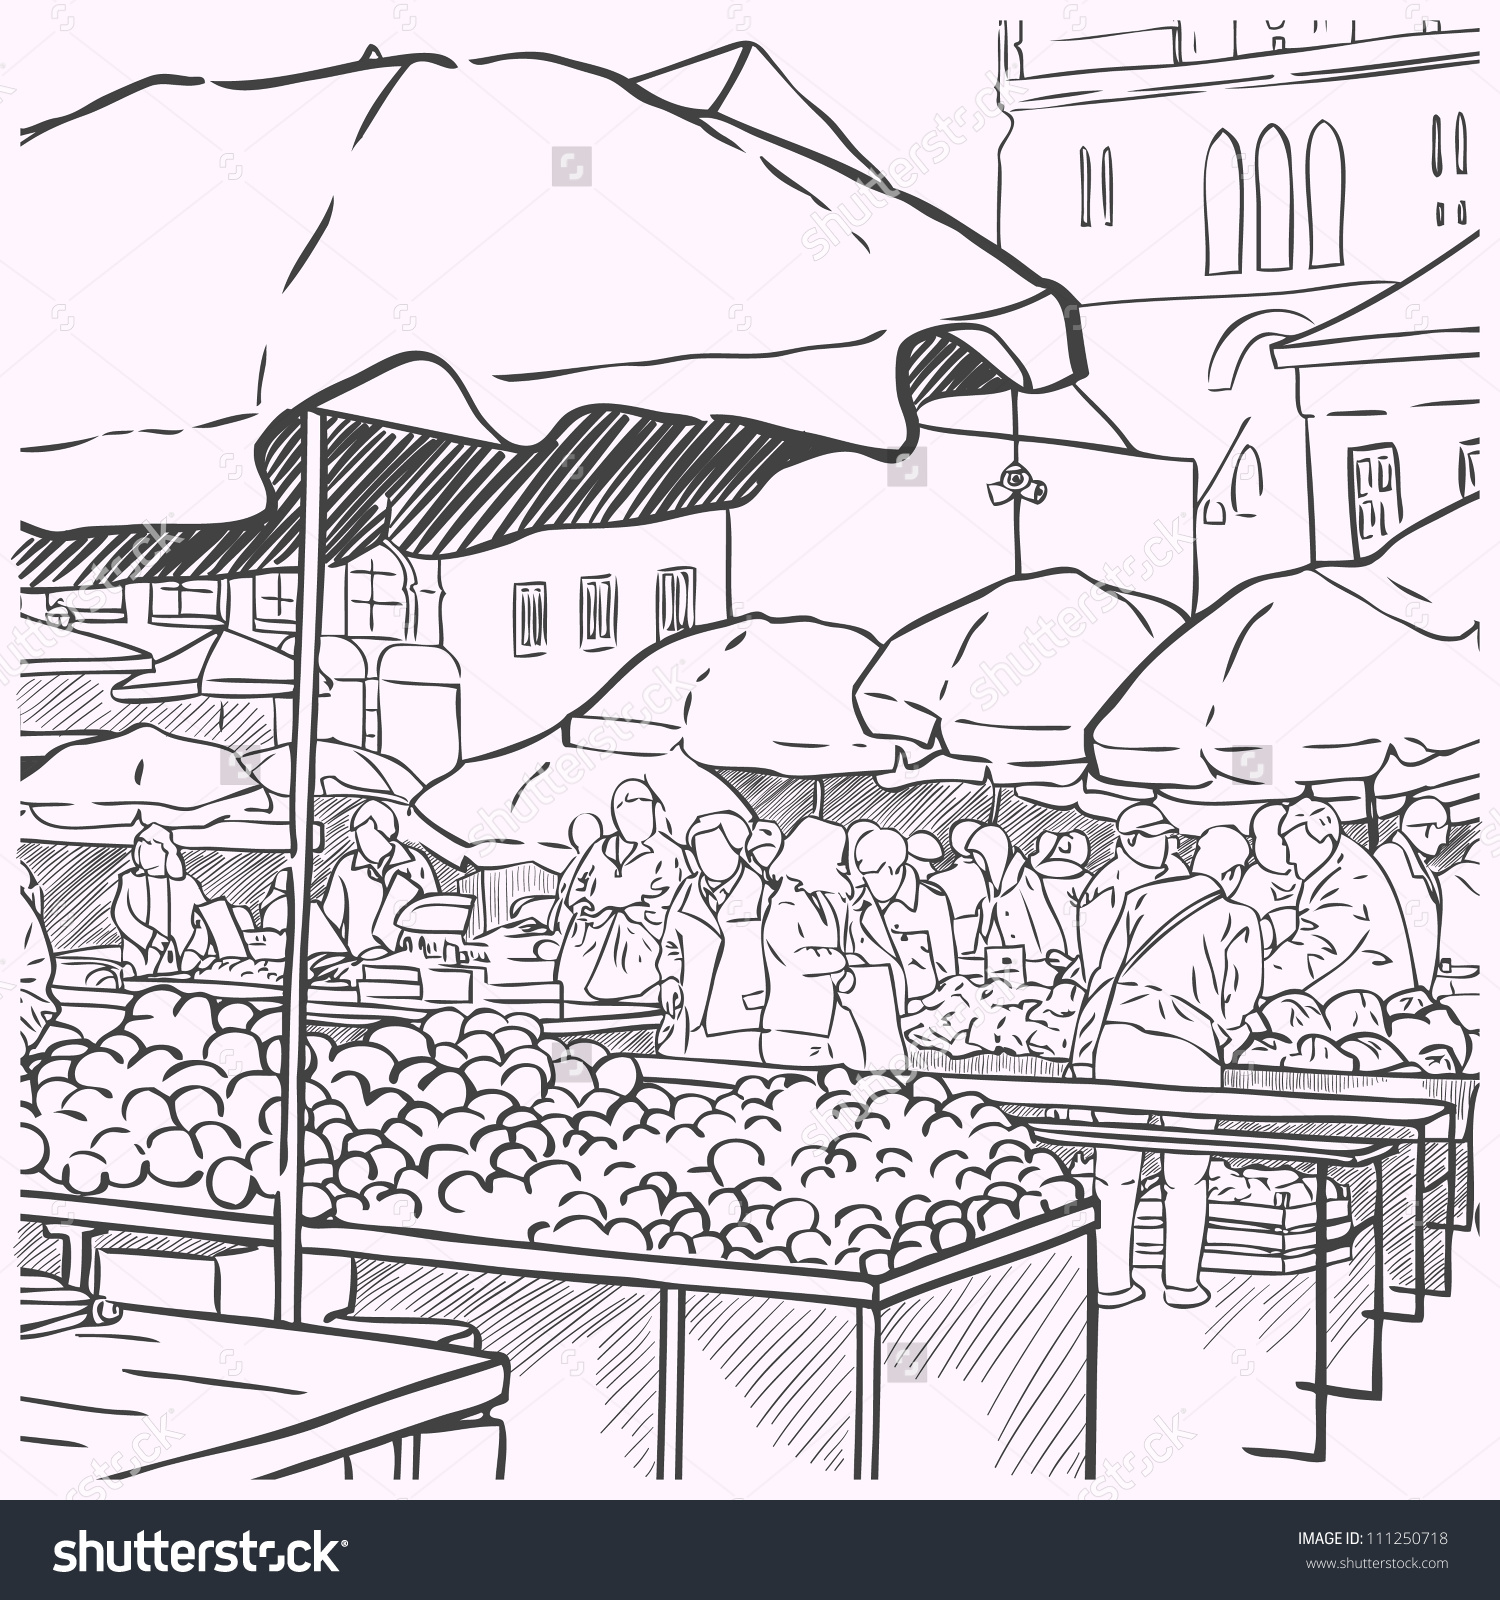 Outdoor market tents and people clipart drawing.